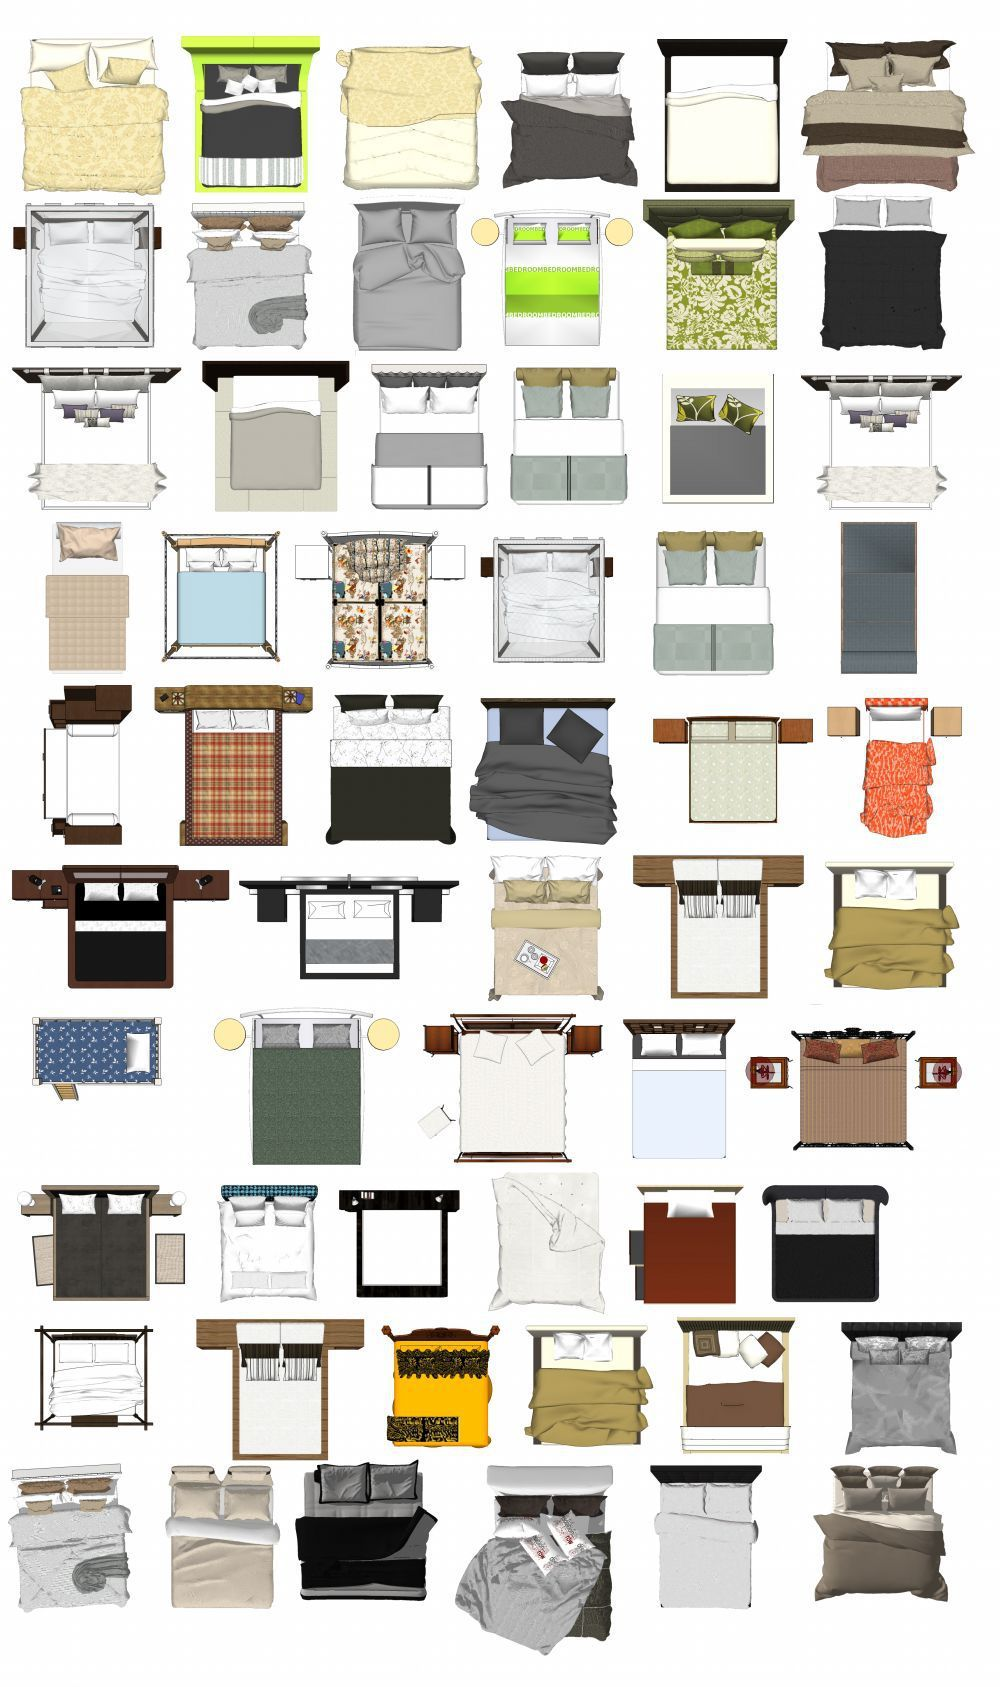 Free photoshop psd bed blocks 1 free cad blocks for Free architectural drawing program